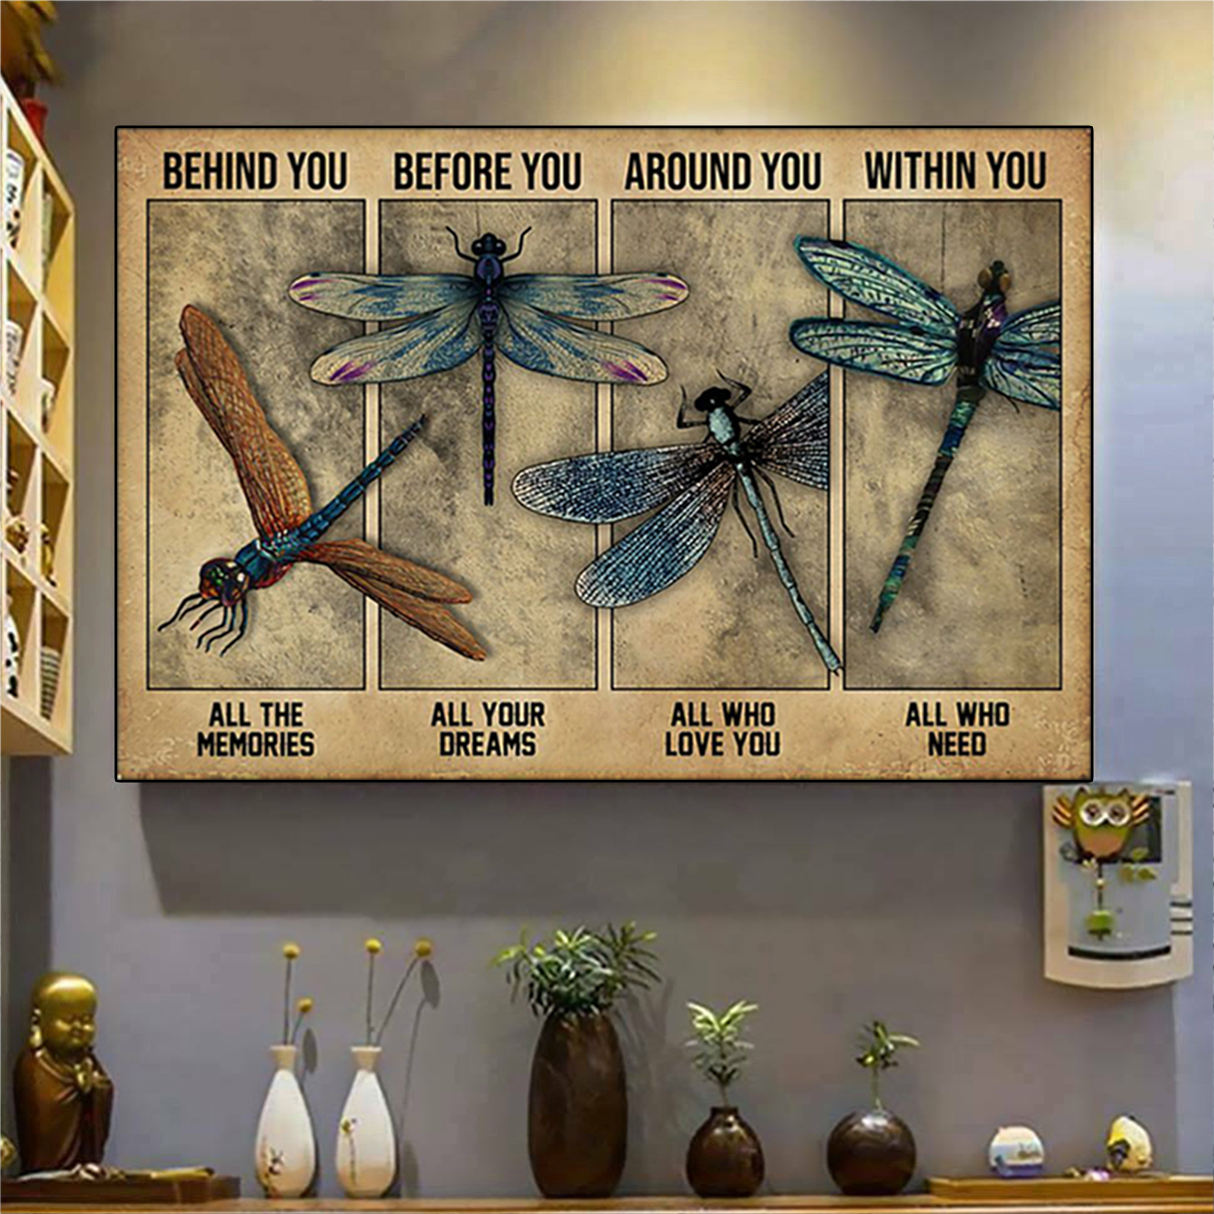 Dragonfly behind you all the memories poster A1